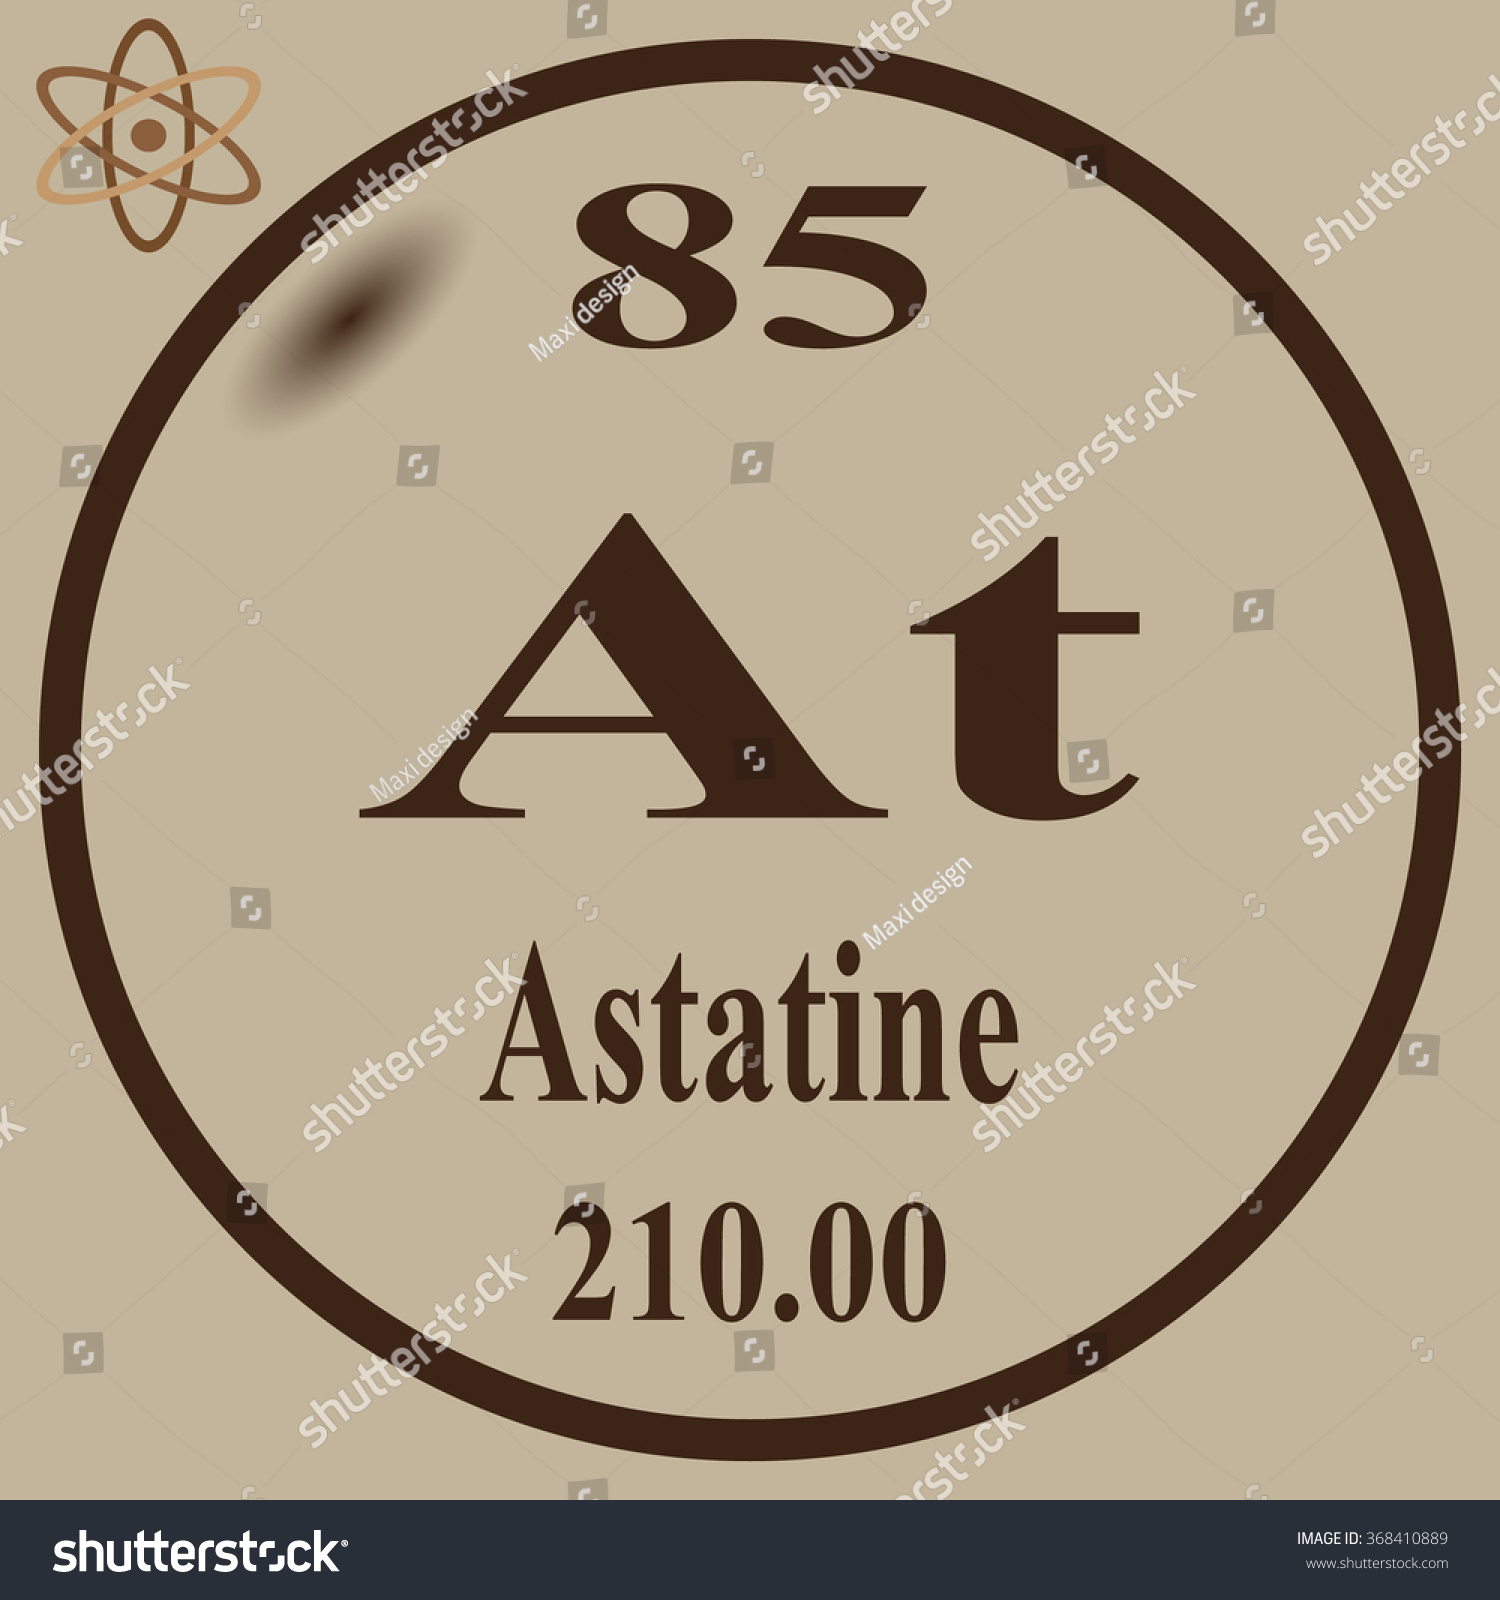 Periodic table elements astatine stock vector 368410889 shutterstock periodic table of elements astatine gamestrikefo Image collections